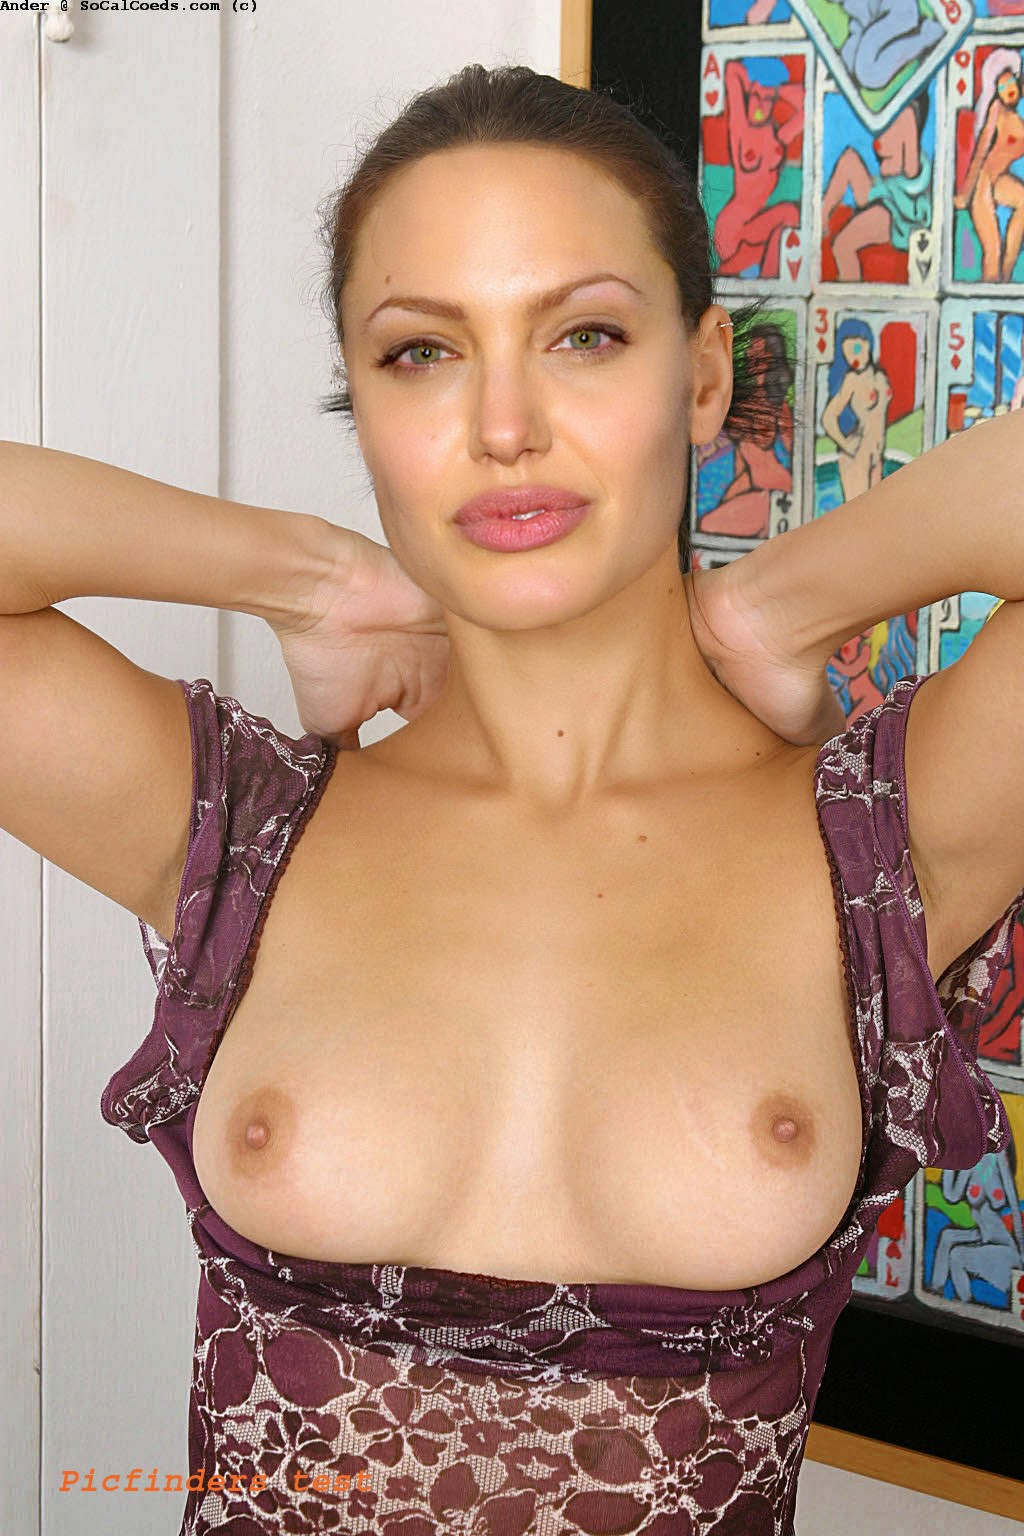 hot celebrities photos and videos: angelina jolie topless and